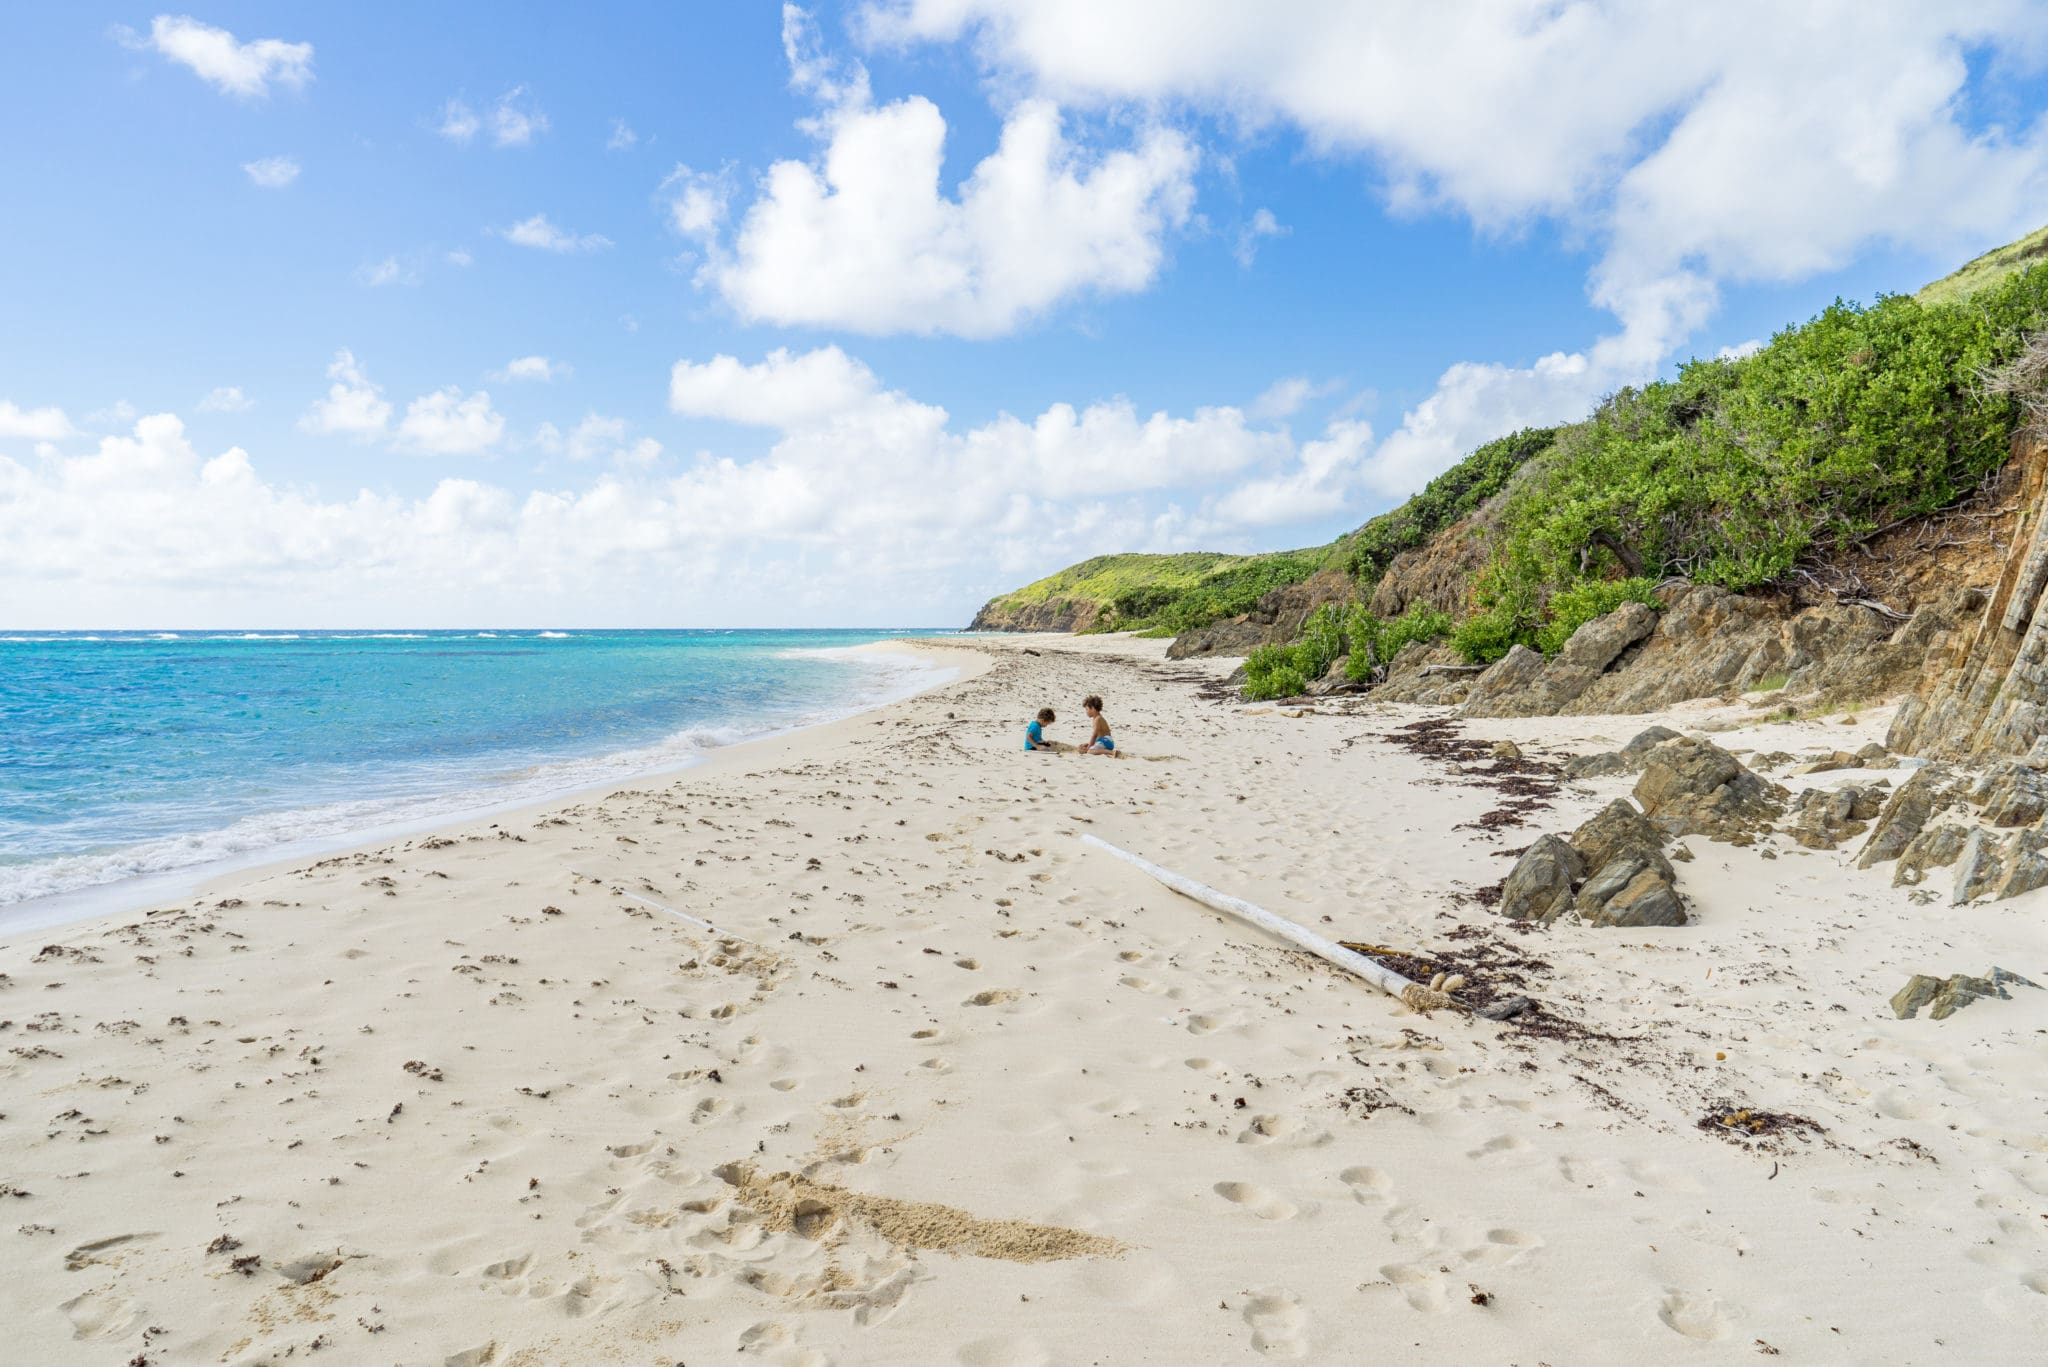 St. Croix - Jack and Isaac Bays Preserve